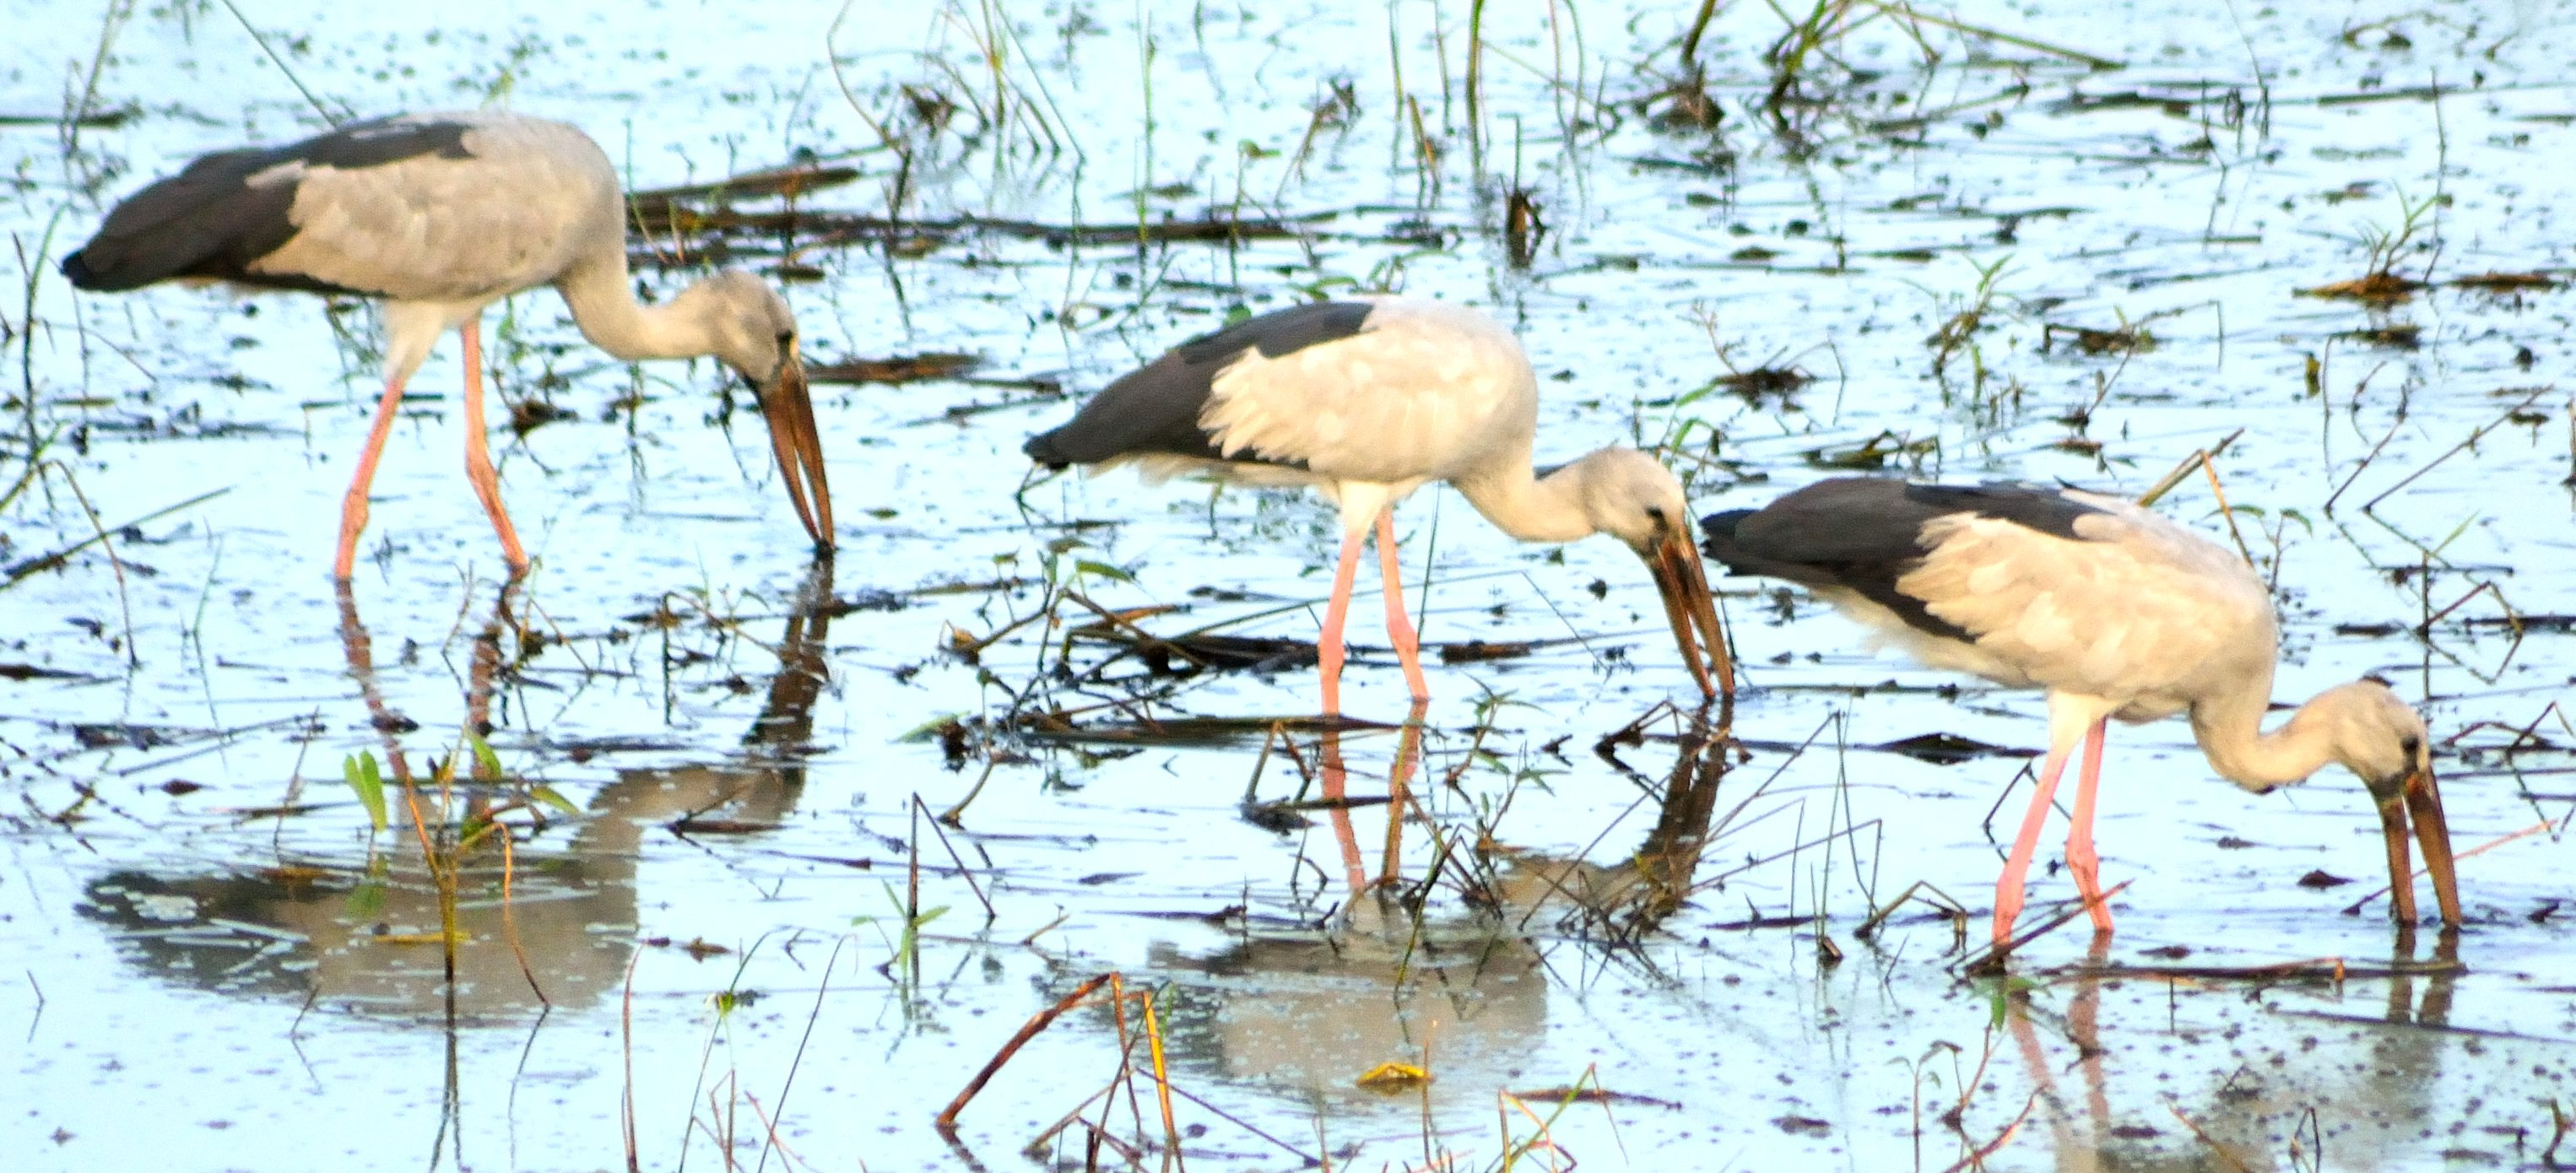 The study found that hunters preferred large and medium-sized waterbirds.